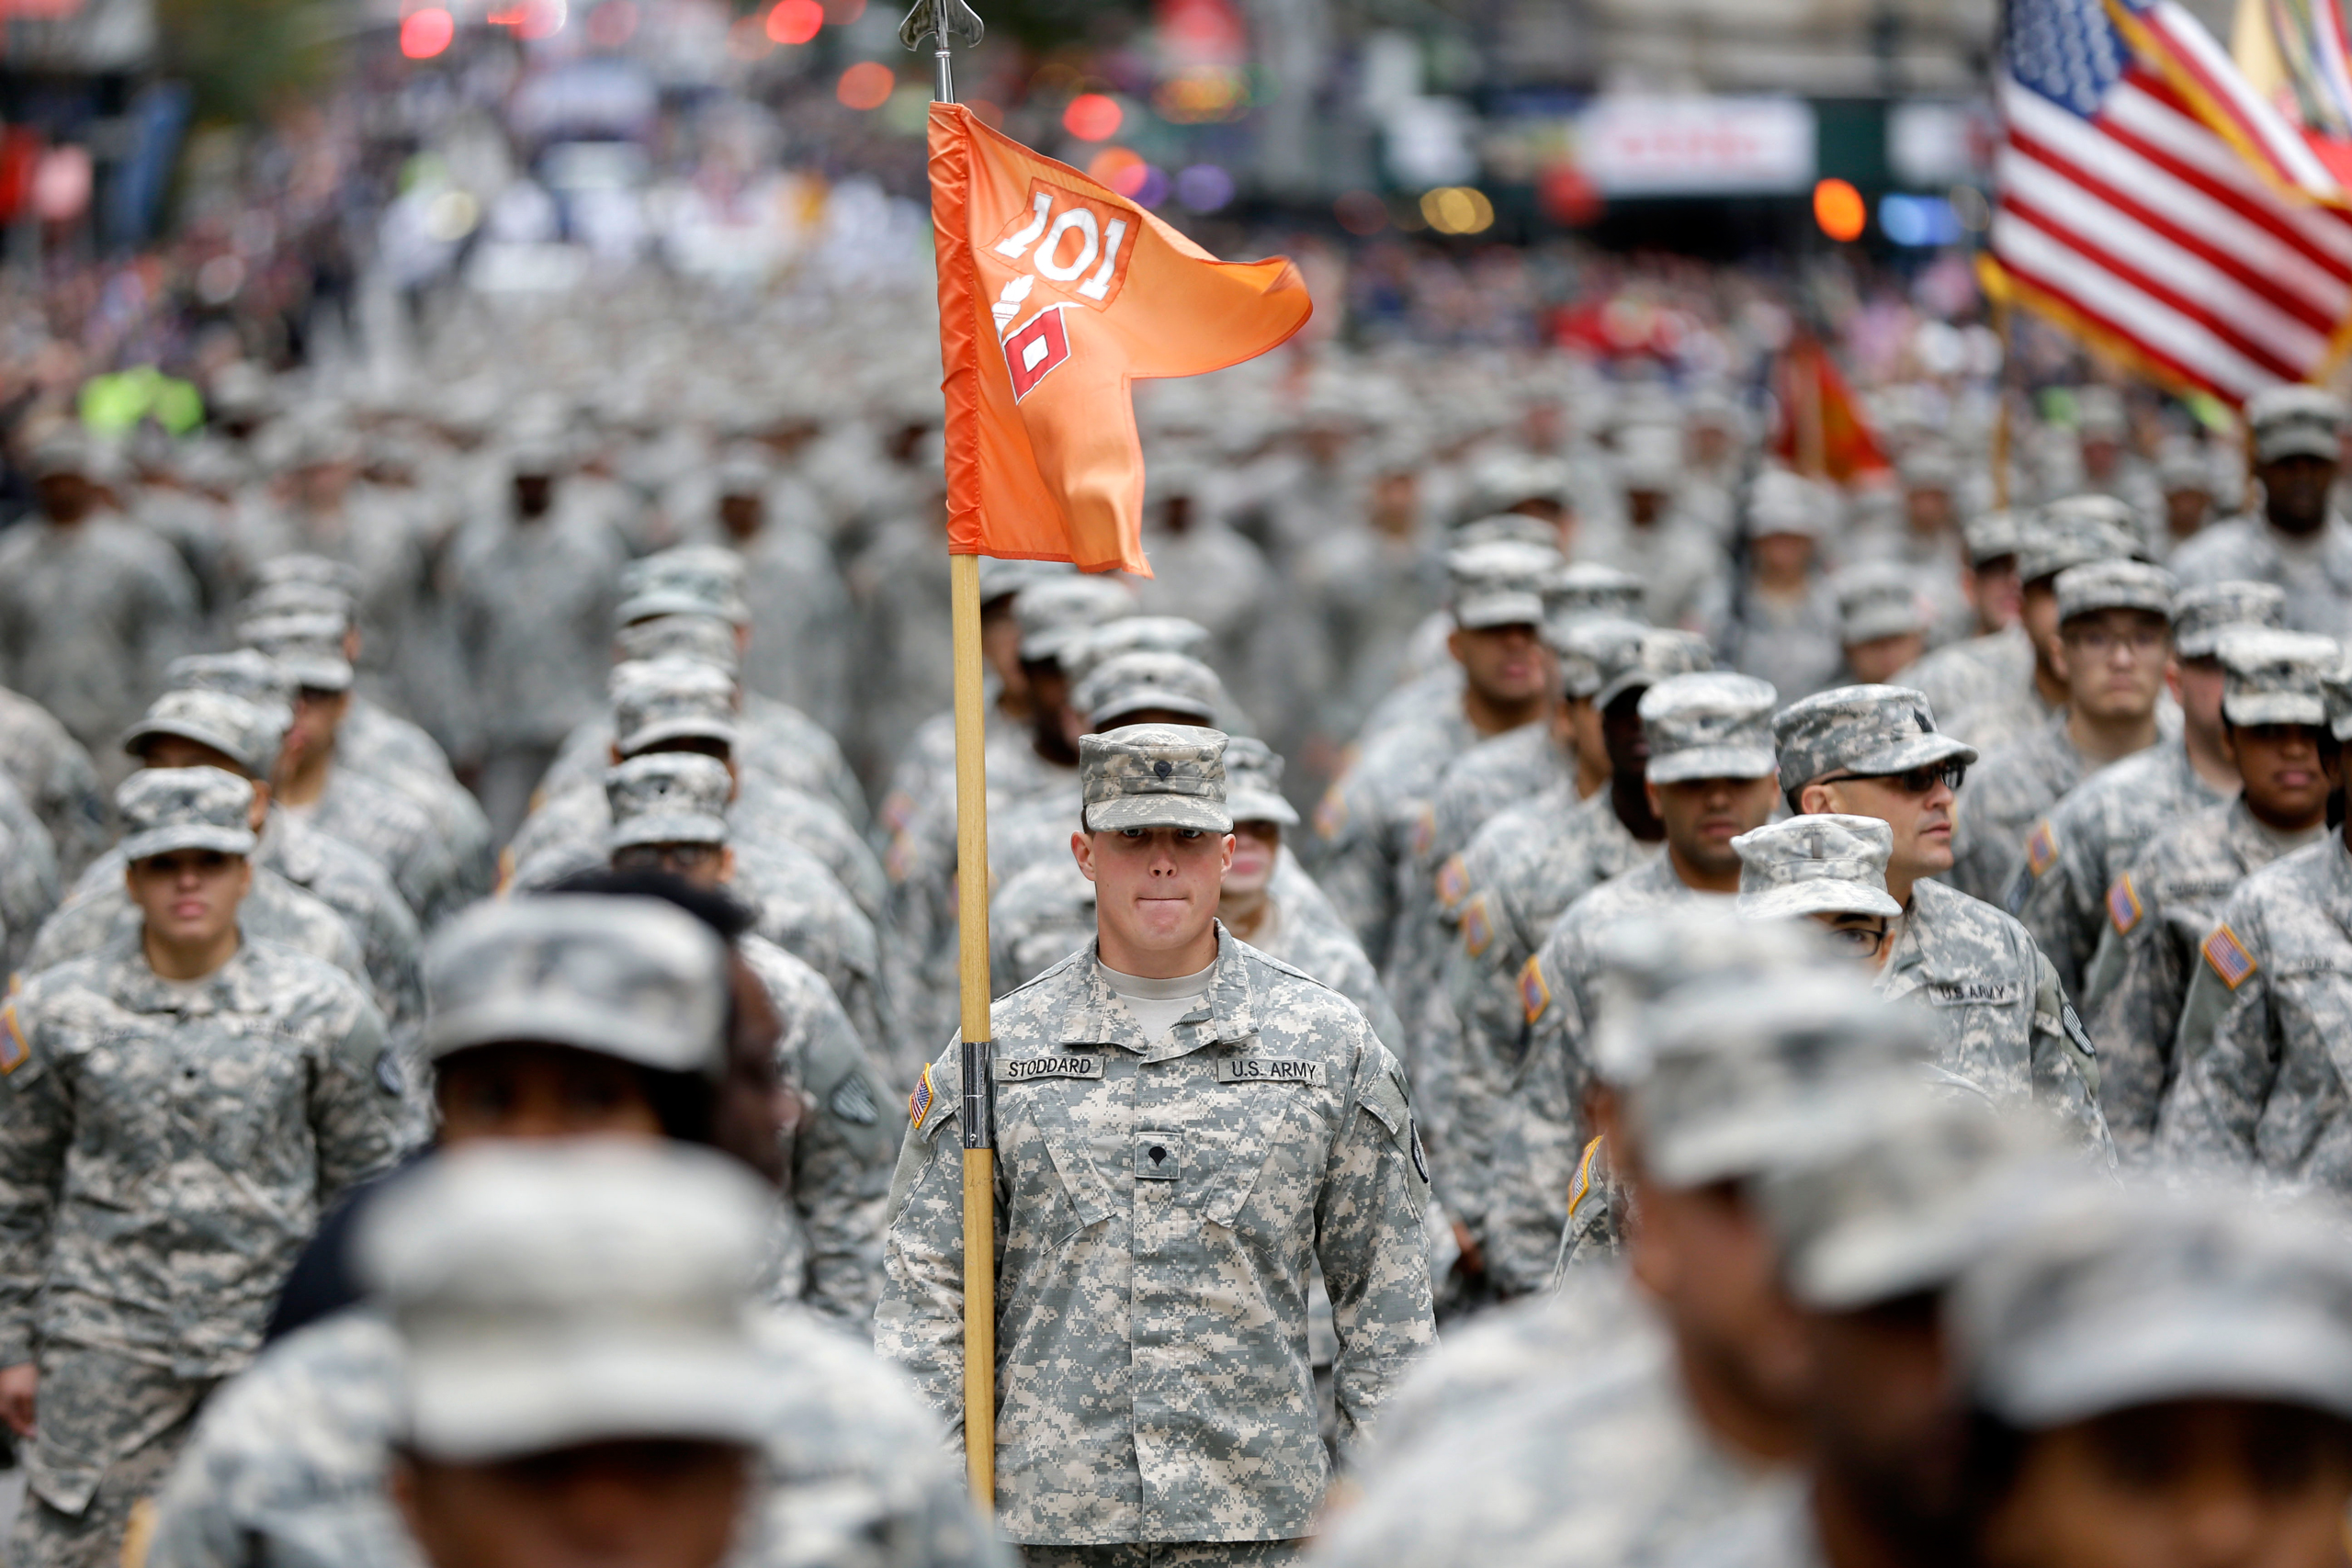 Military personnel march in the annual Veteran's Day parade in New York on Nov. 11, 2015.